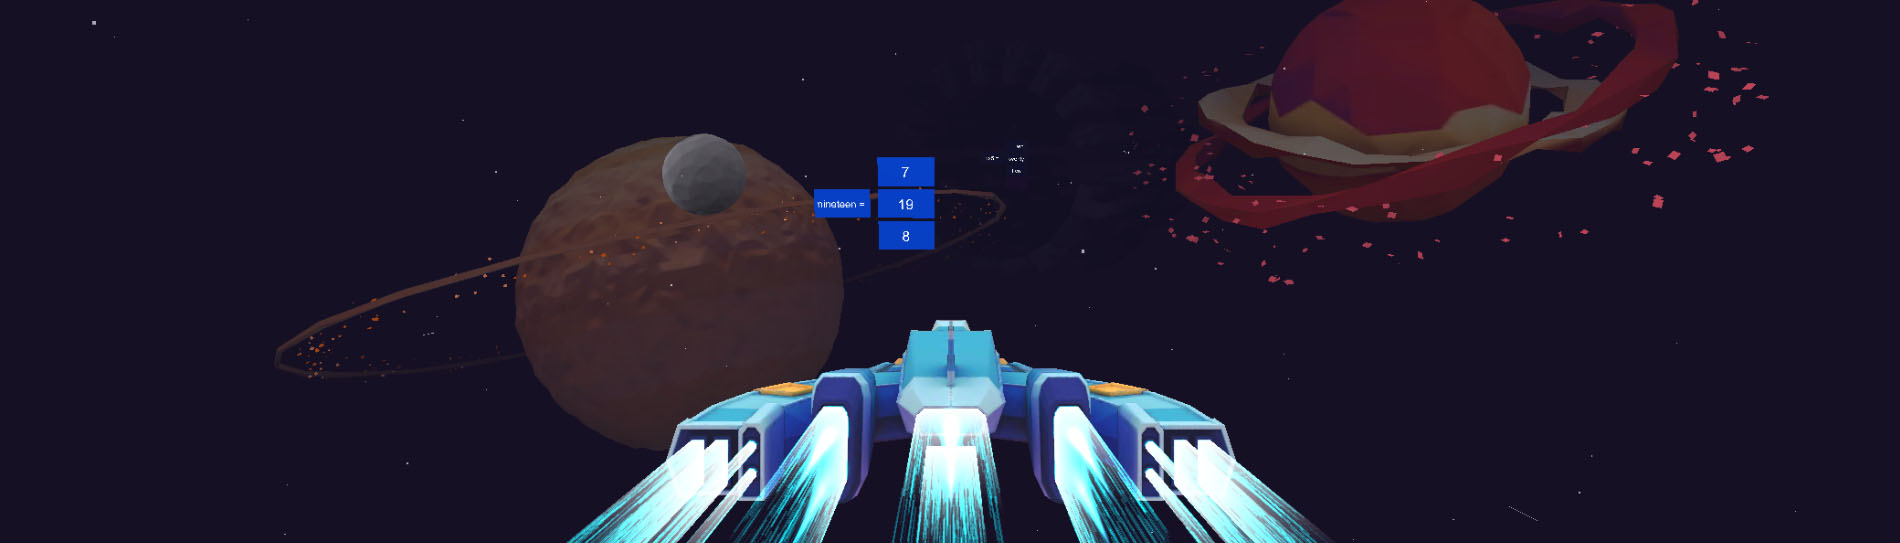 VR space game to learn English and other languages in a fun way